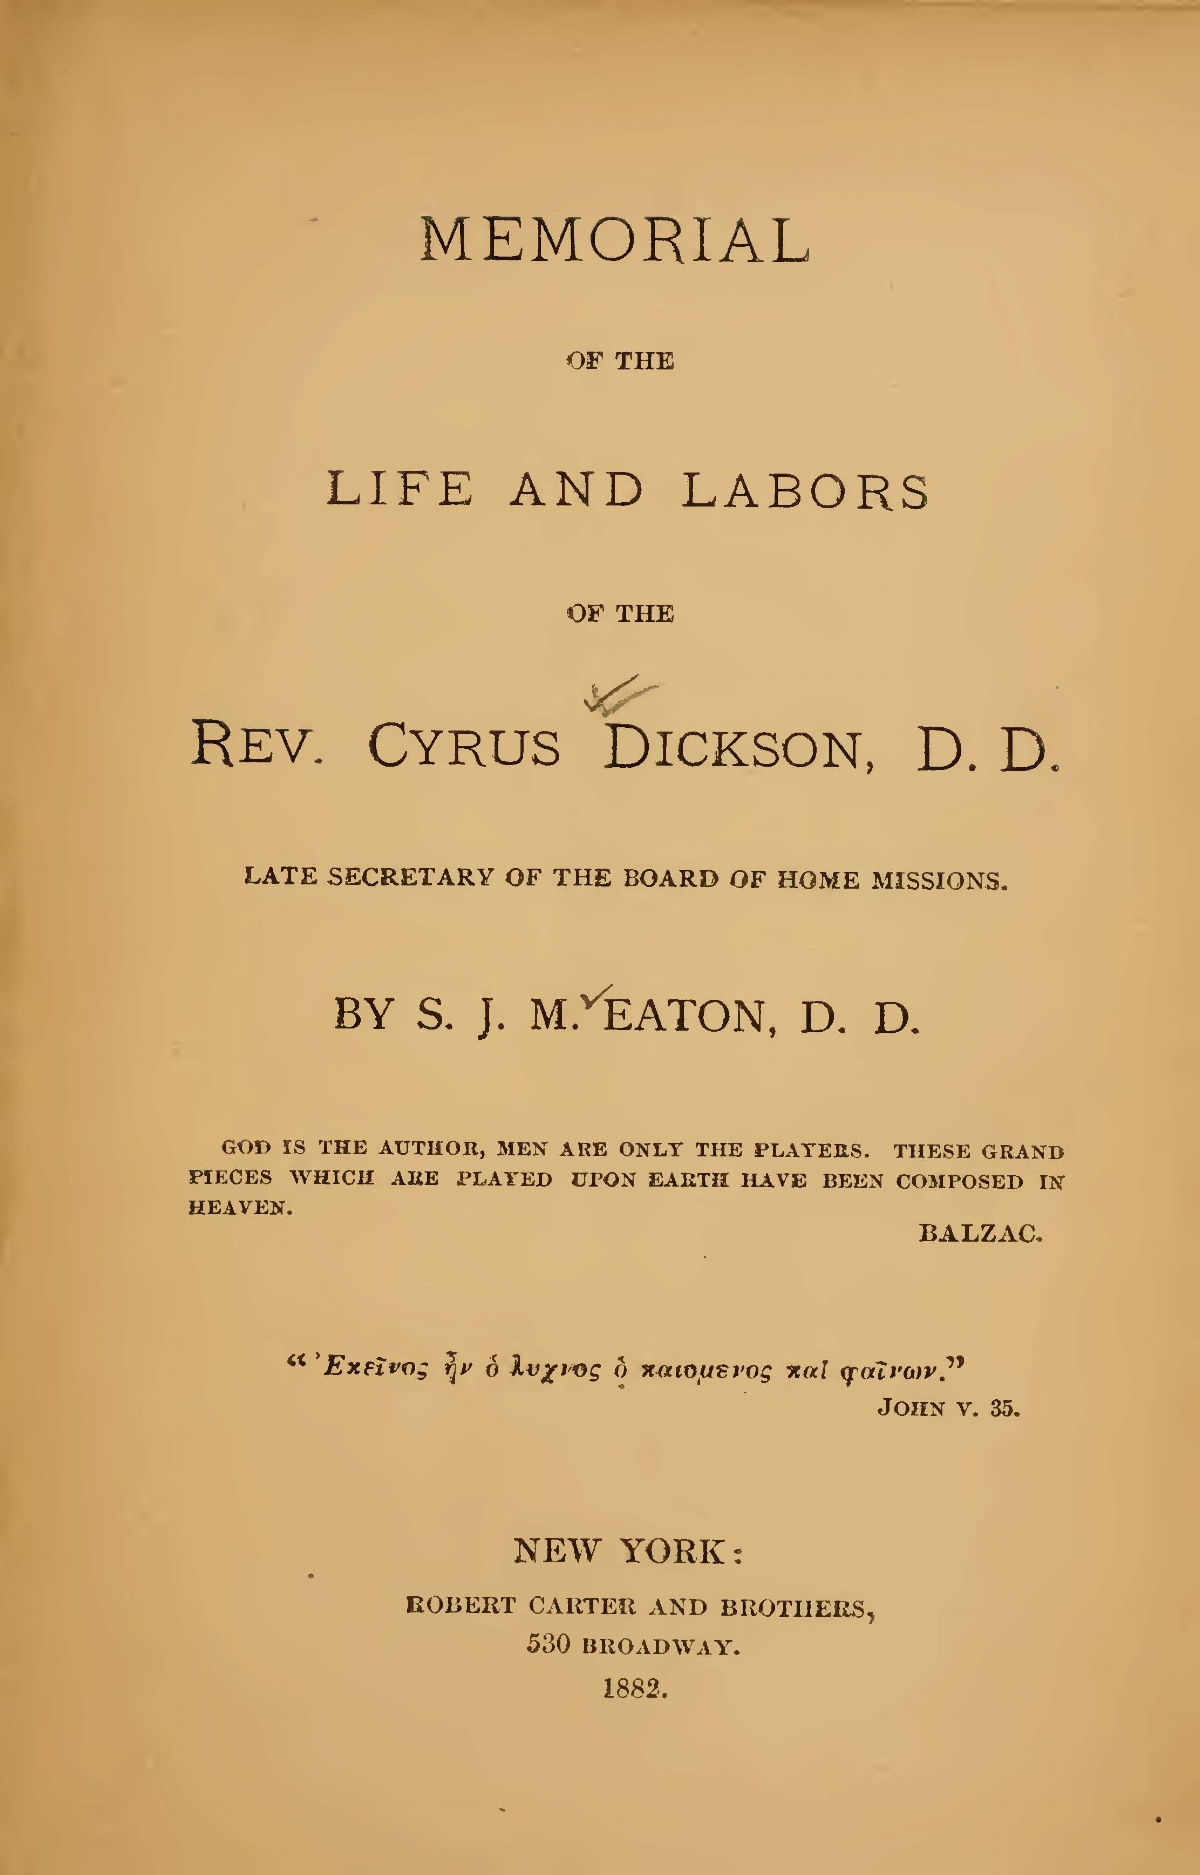 Eaton, Samuel John Mills, Memorial of the Life and Labors of the Rev. Cyrus Dickson Title Page.jpg